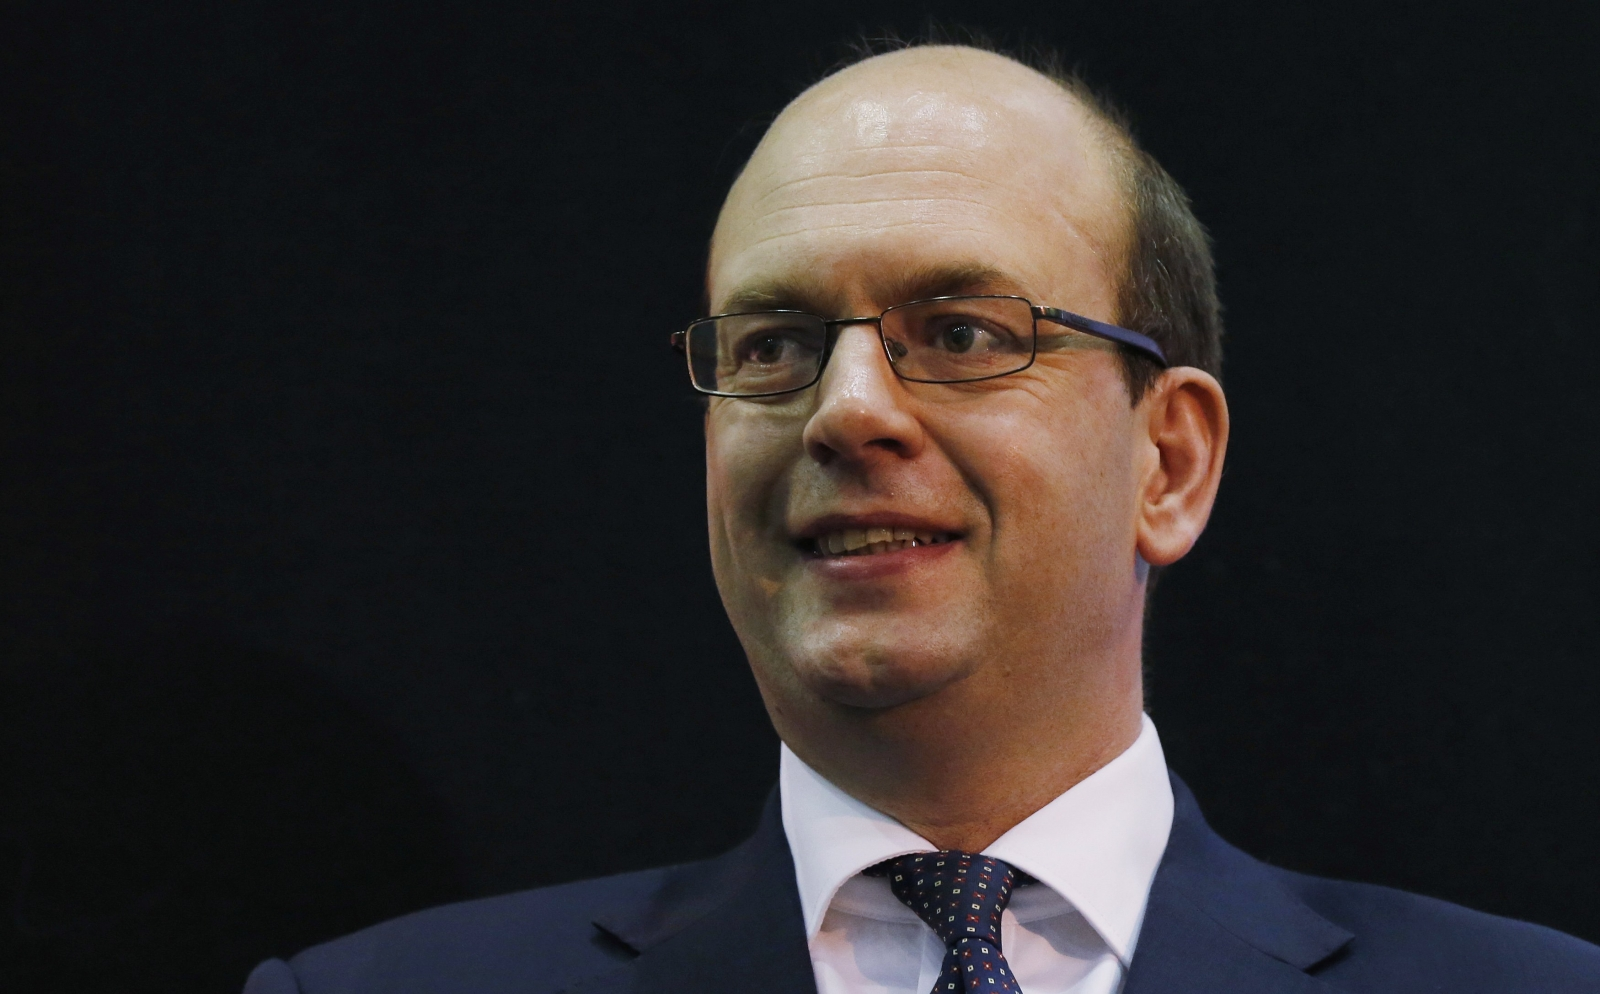 Rochester By-Election: Ukip Candidate Mark Reckless Wins With 42% of Vote